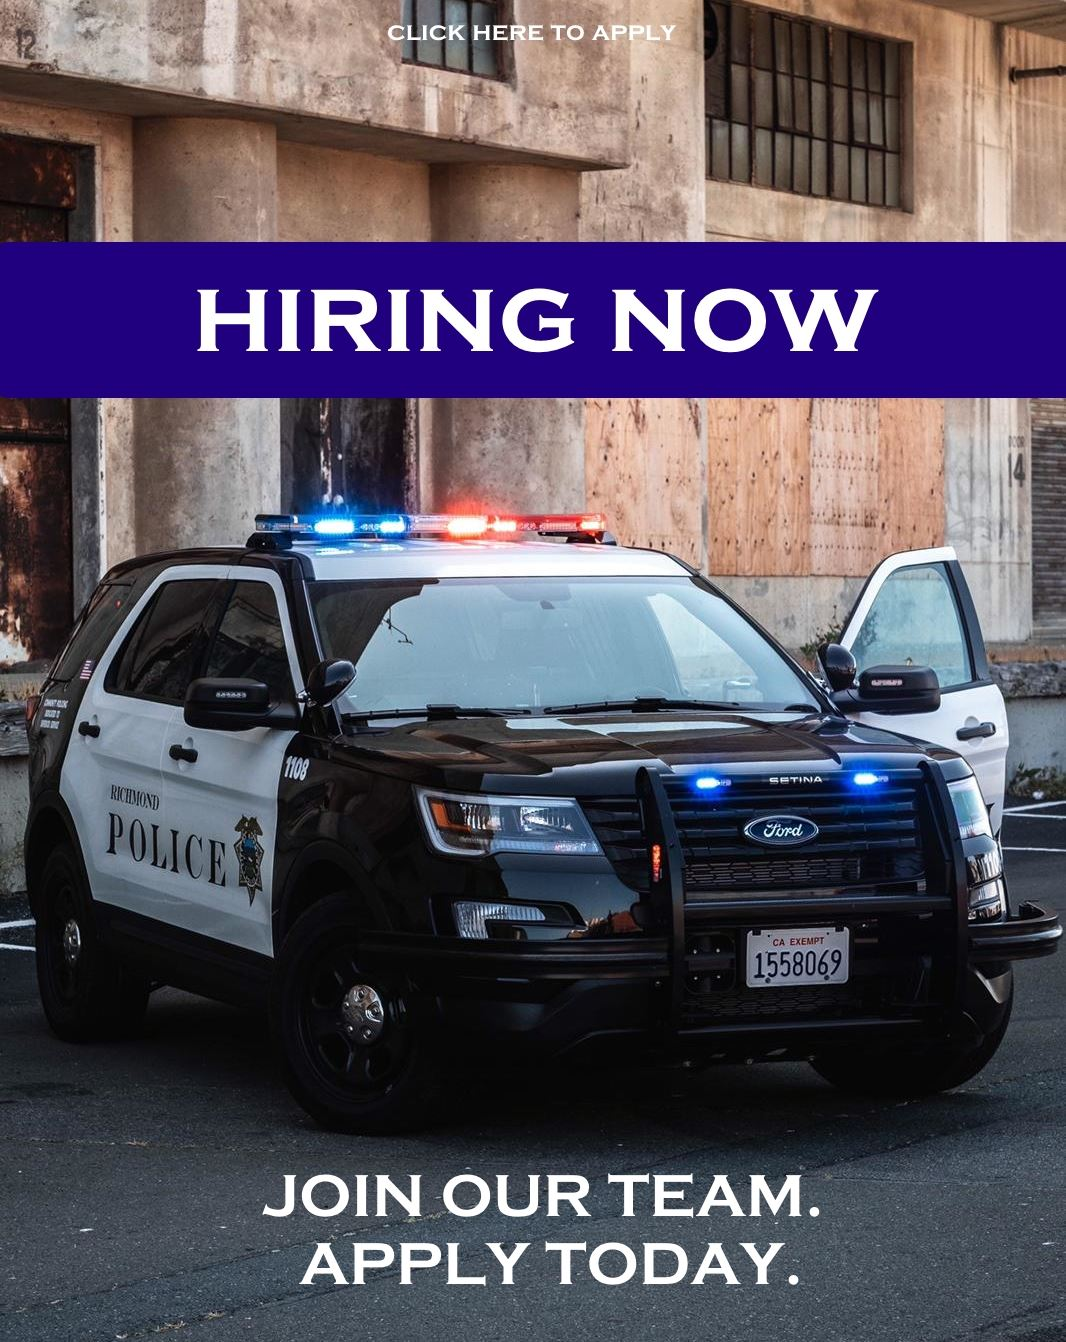 Richmond Police Department | Richmond, CA - Official Website